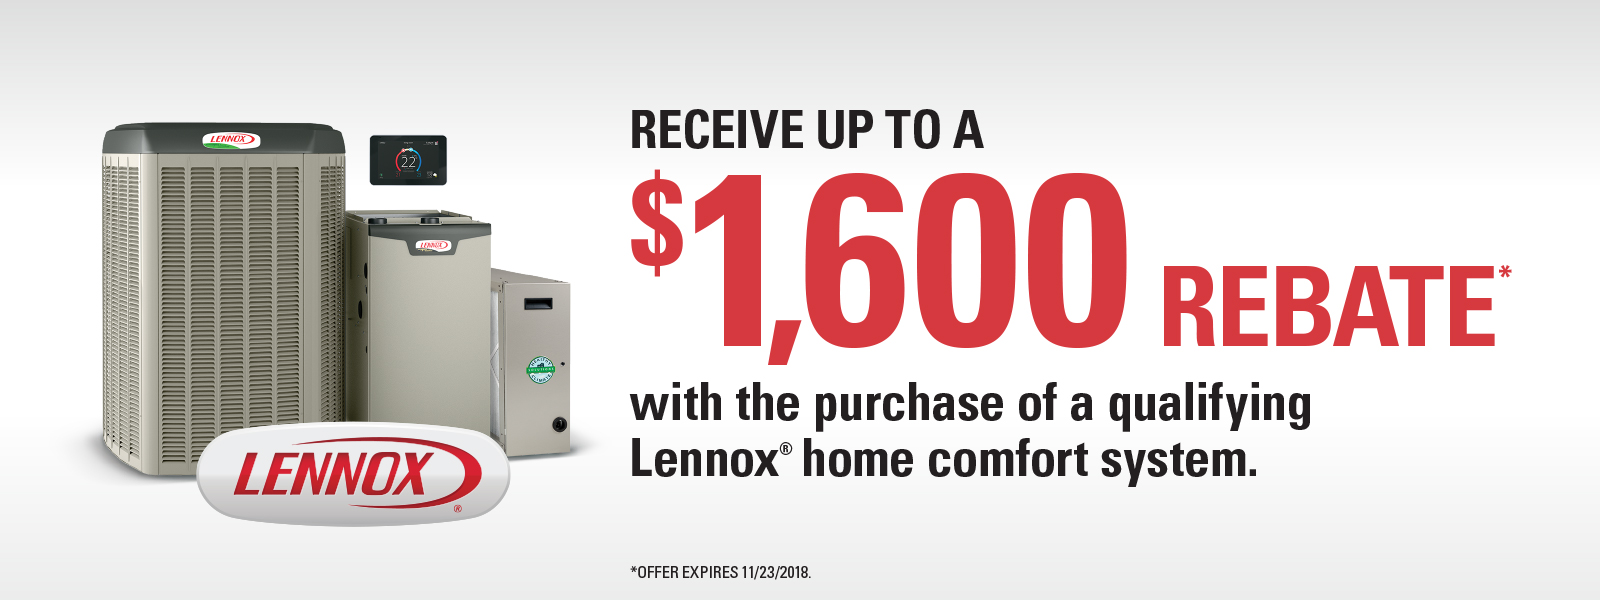 Lennox Promotion